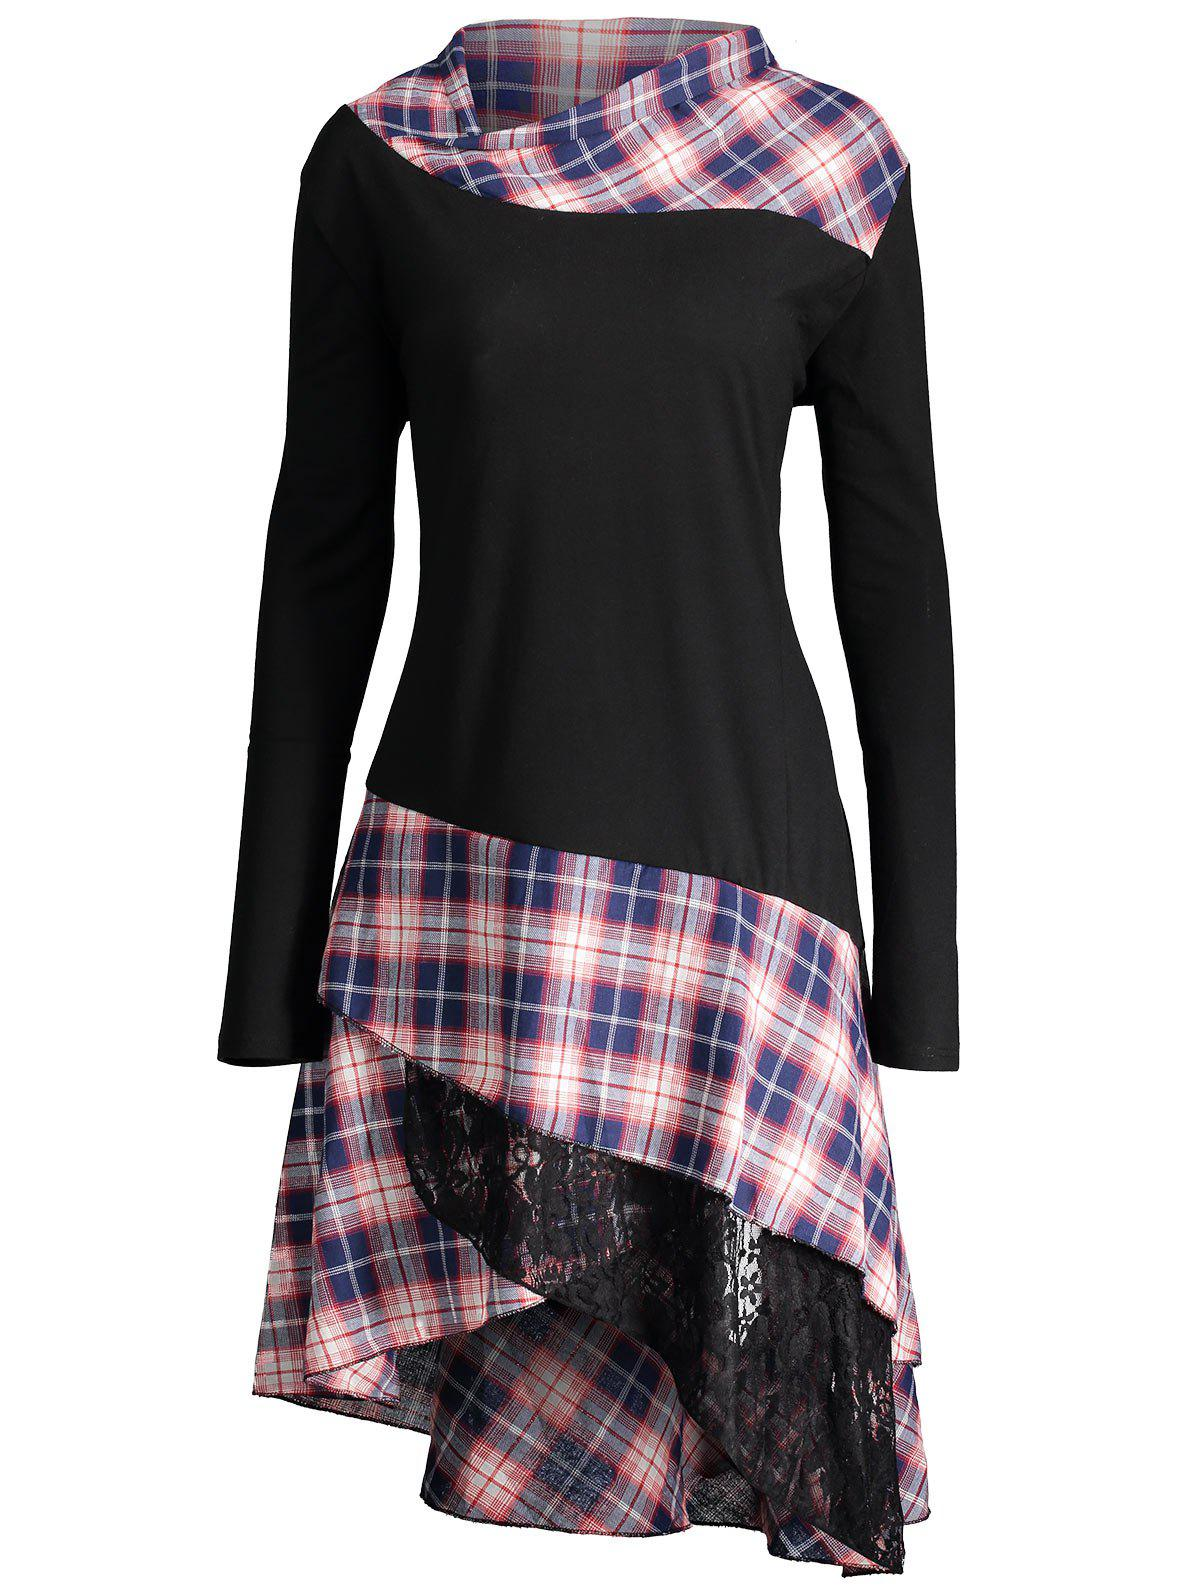 Long Plus Size Lace Plaid Panel TopWOMEN<br><br>Size: 2XL; Color: BLACK; Material: Polyester,Spandex; Shirt Length: Long; Sleeve Length: Full; Collar: Mock Neck; Style: Fashion; Season: Fall,Spring; Pattern Type: Plaid; Weight: 0.4100kg; Package Contents: 1 x Top;